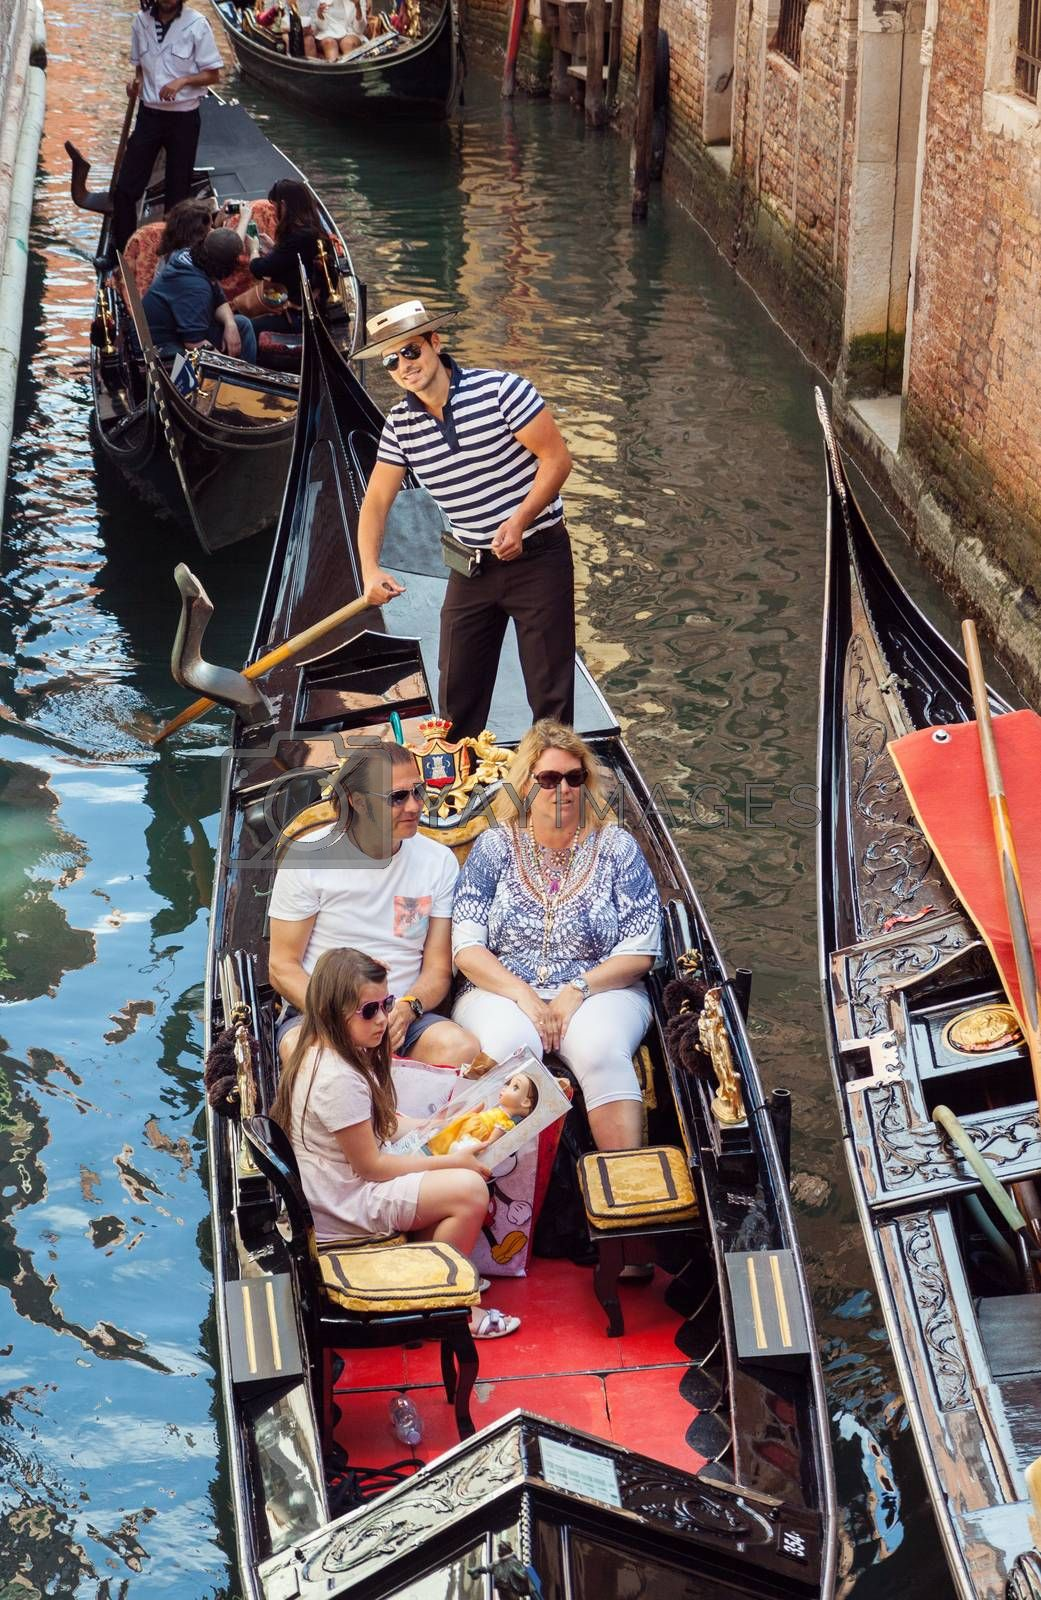 VENICE, ITALY - MAY 27, 2015: Parents and young girl sailing in gondola, in Venice, Italy. Gondolier is smiling at camera.